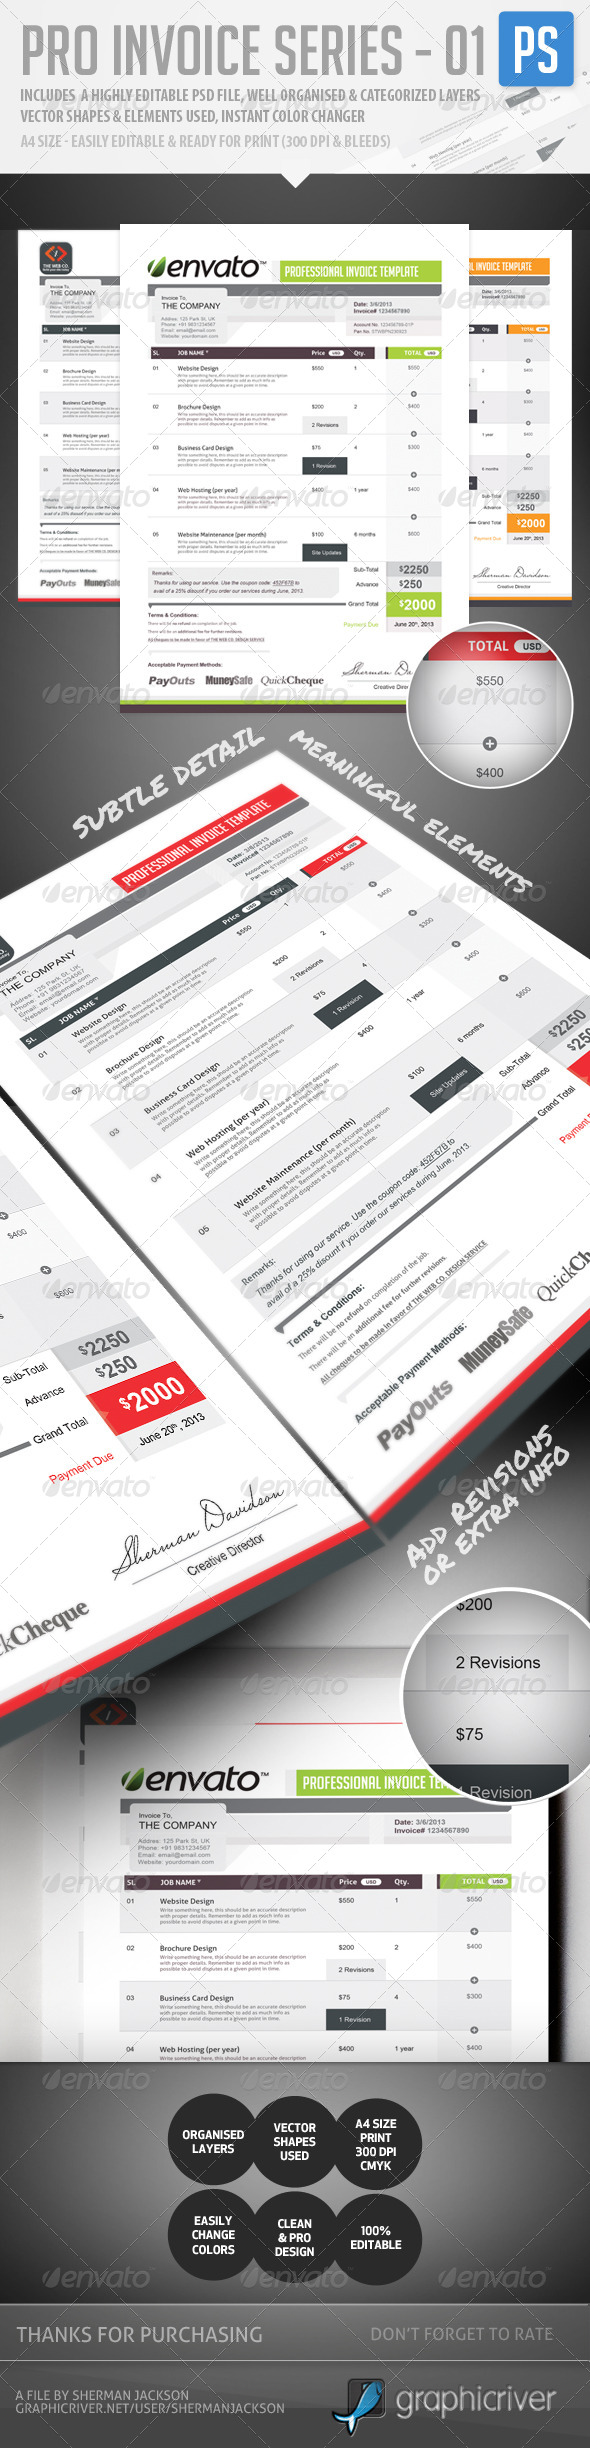 Pro Invoice Template Series - 01 - Proposals & Invoices Stationery